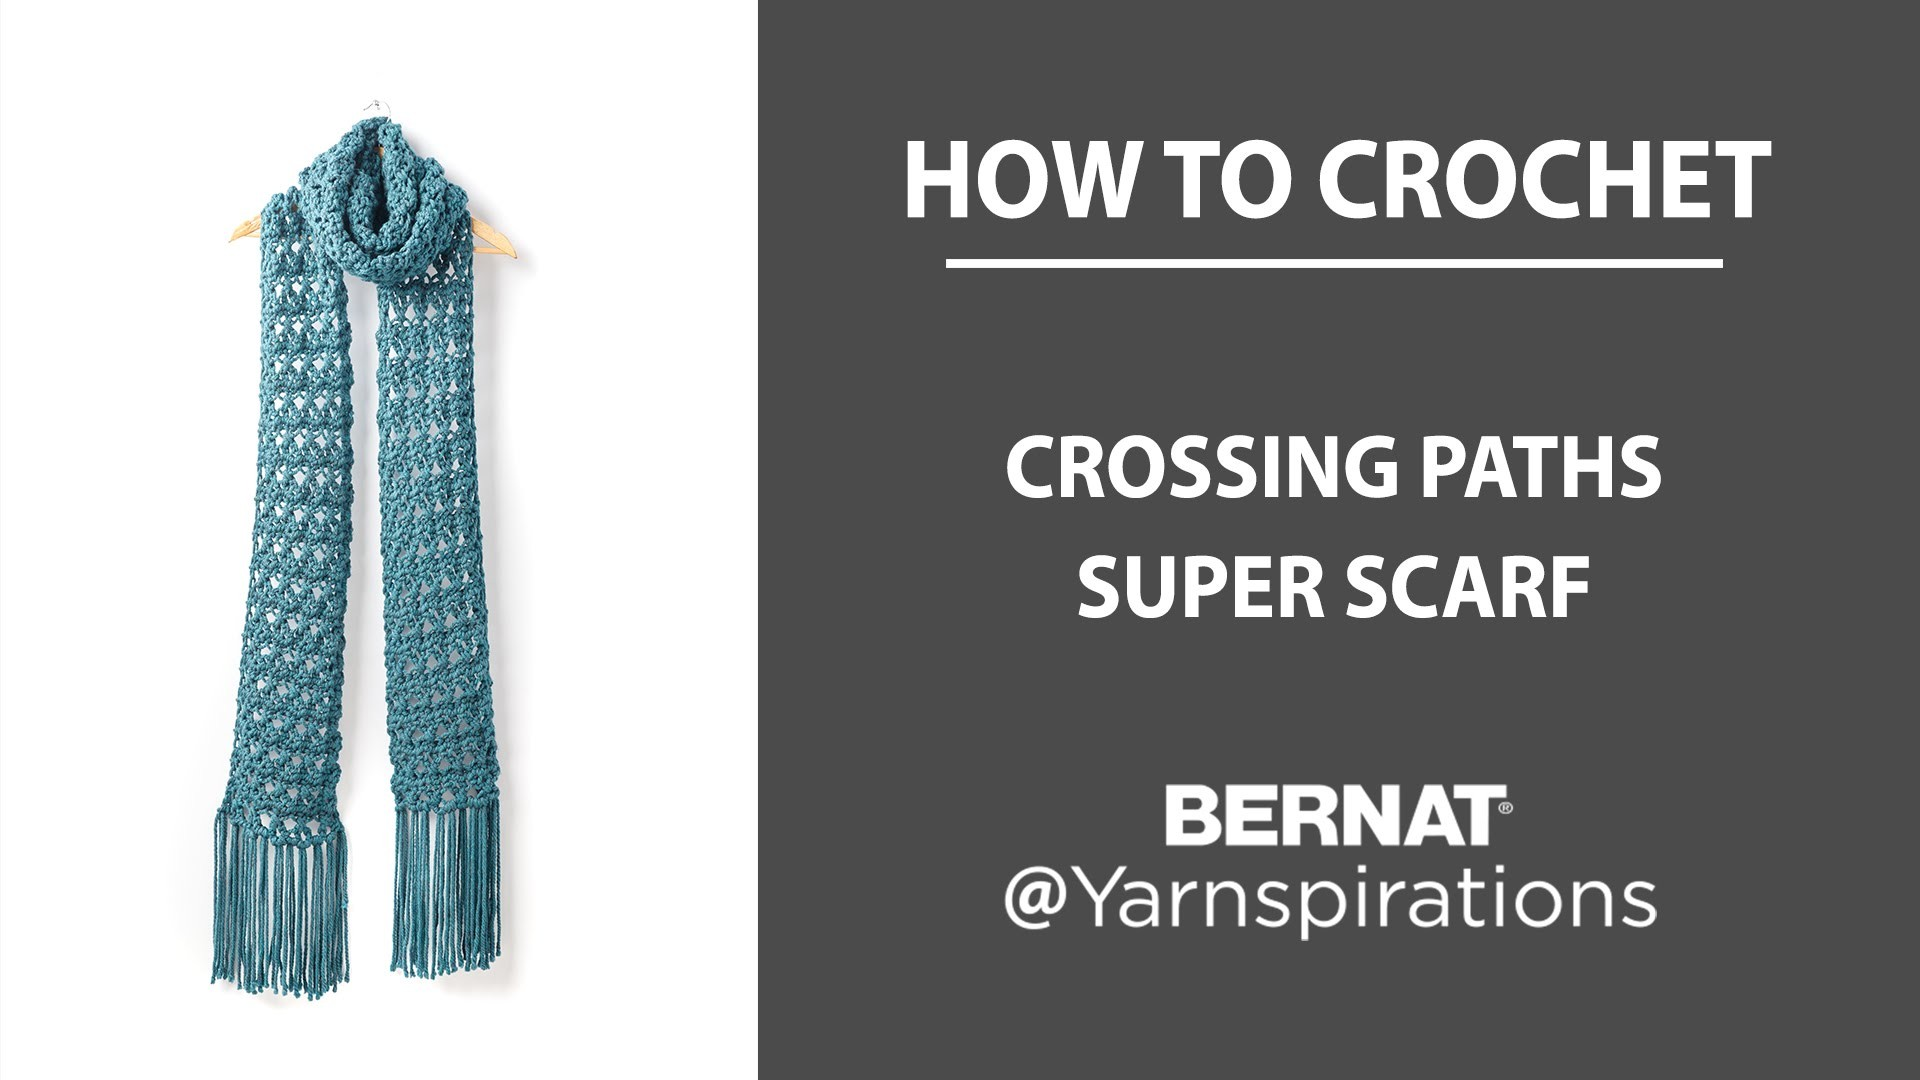 How To Crochet a Super Scarf